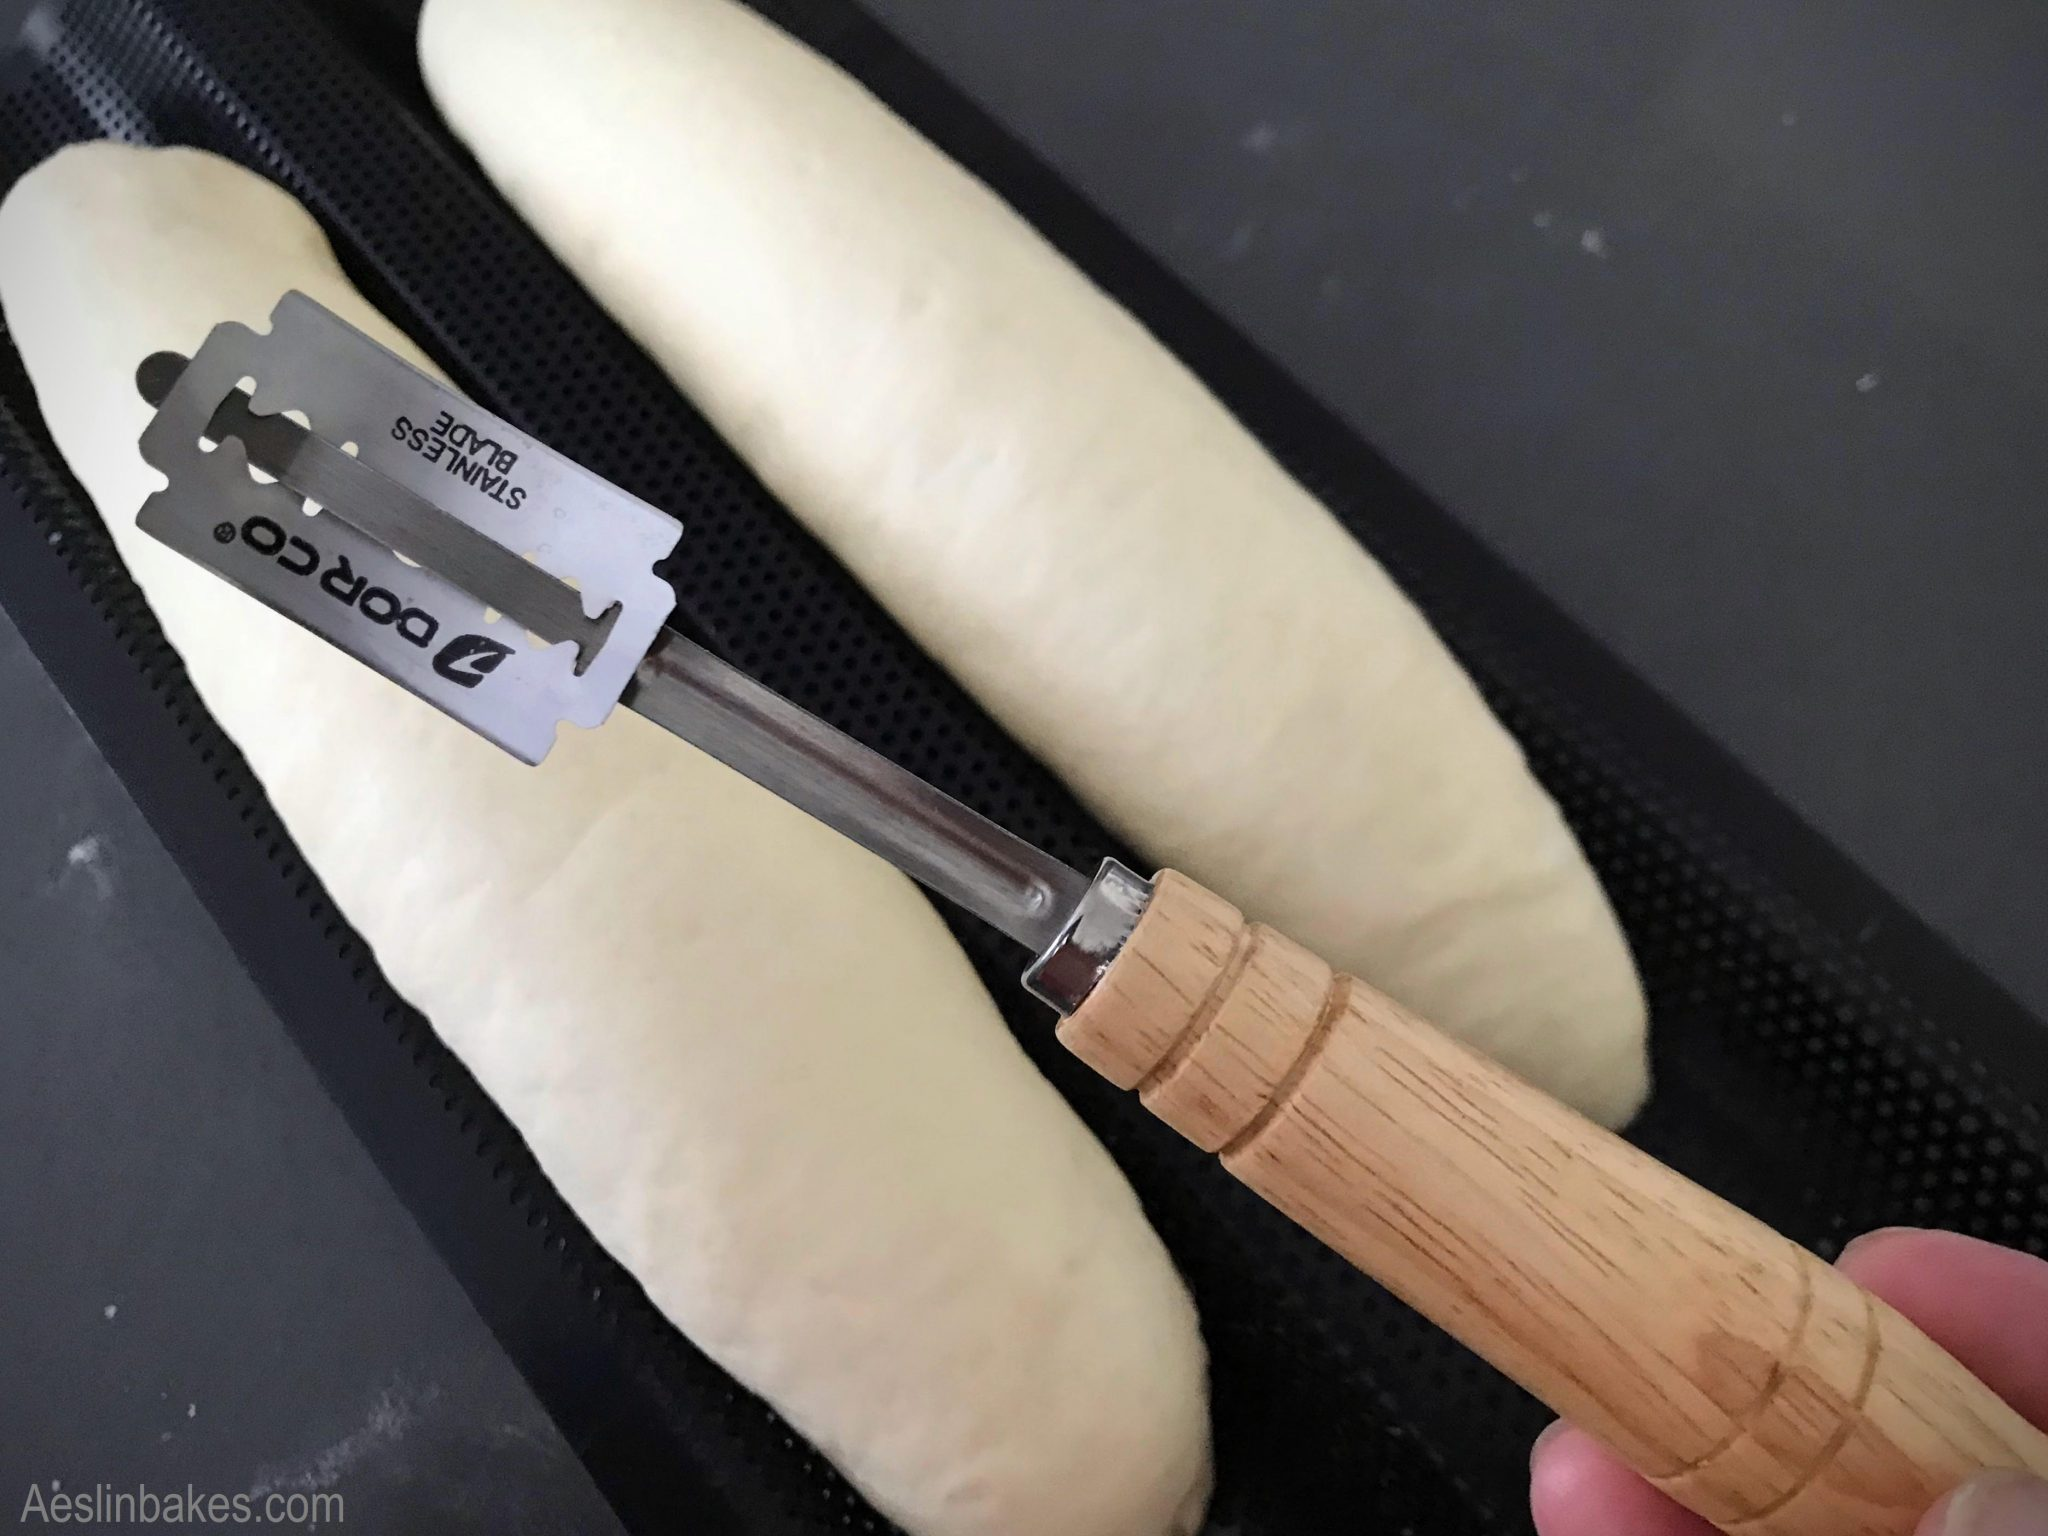 Lame - a blade used for slashing dough